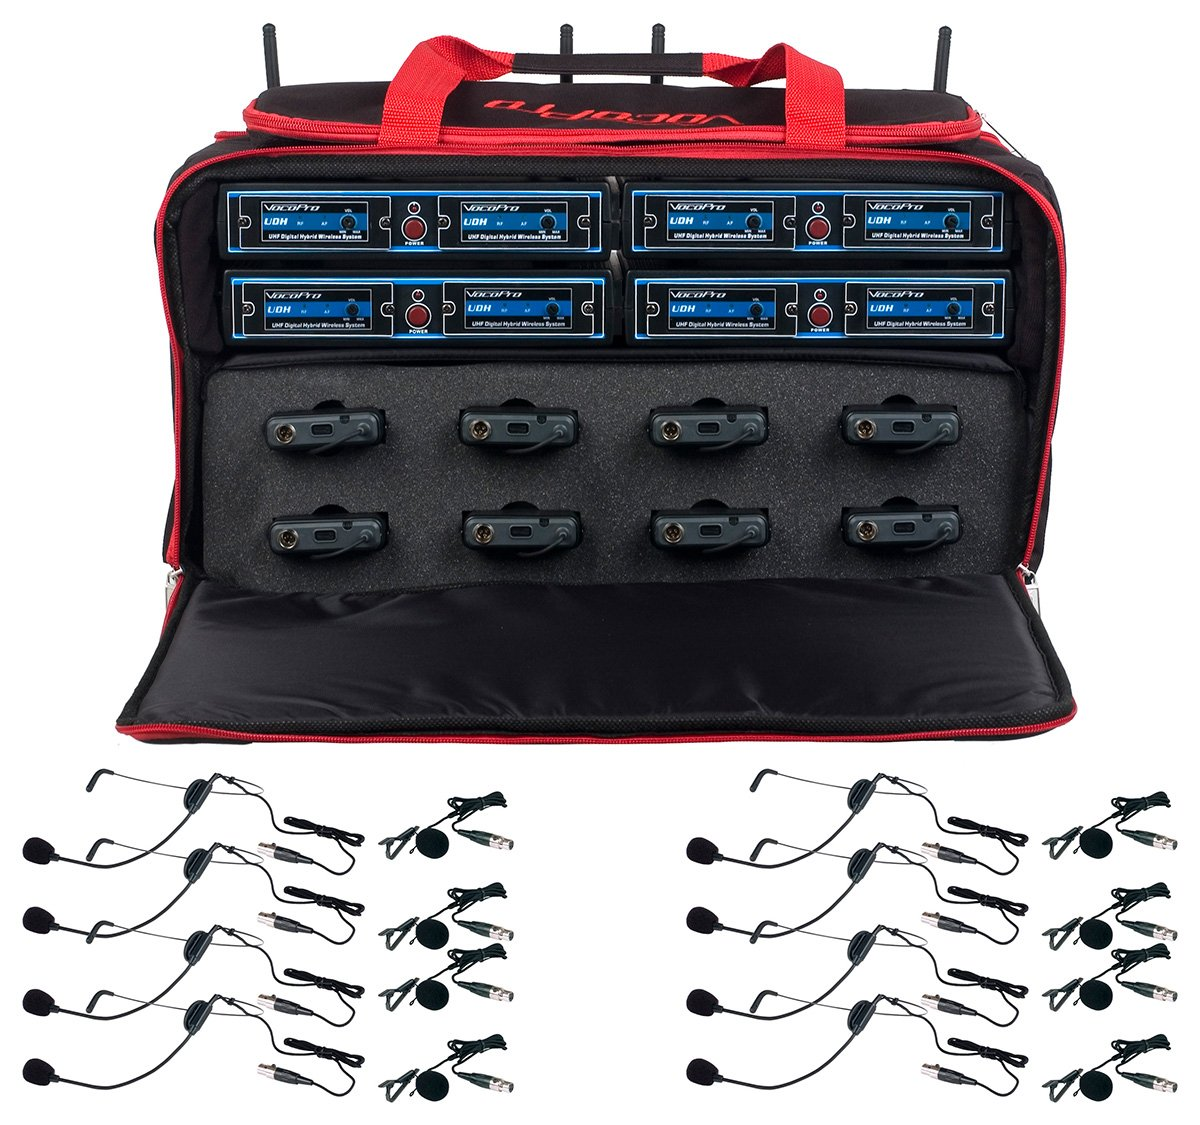 Eight Channel Hybrid Wireless Headset/Lapel Microphone System In A Bag